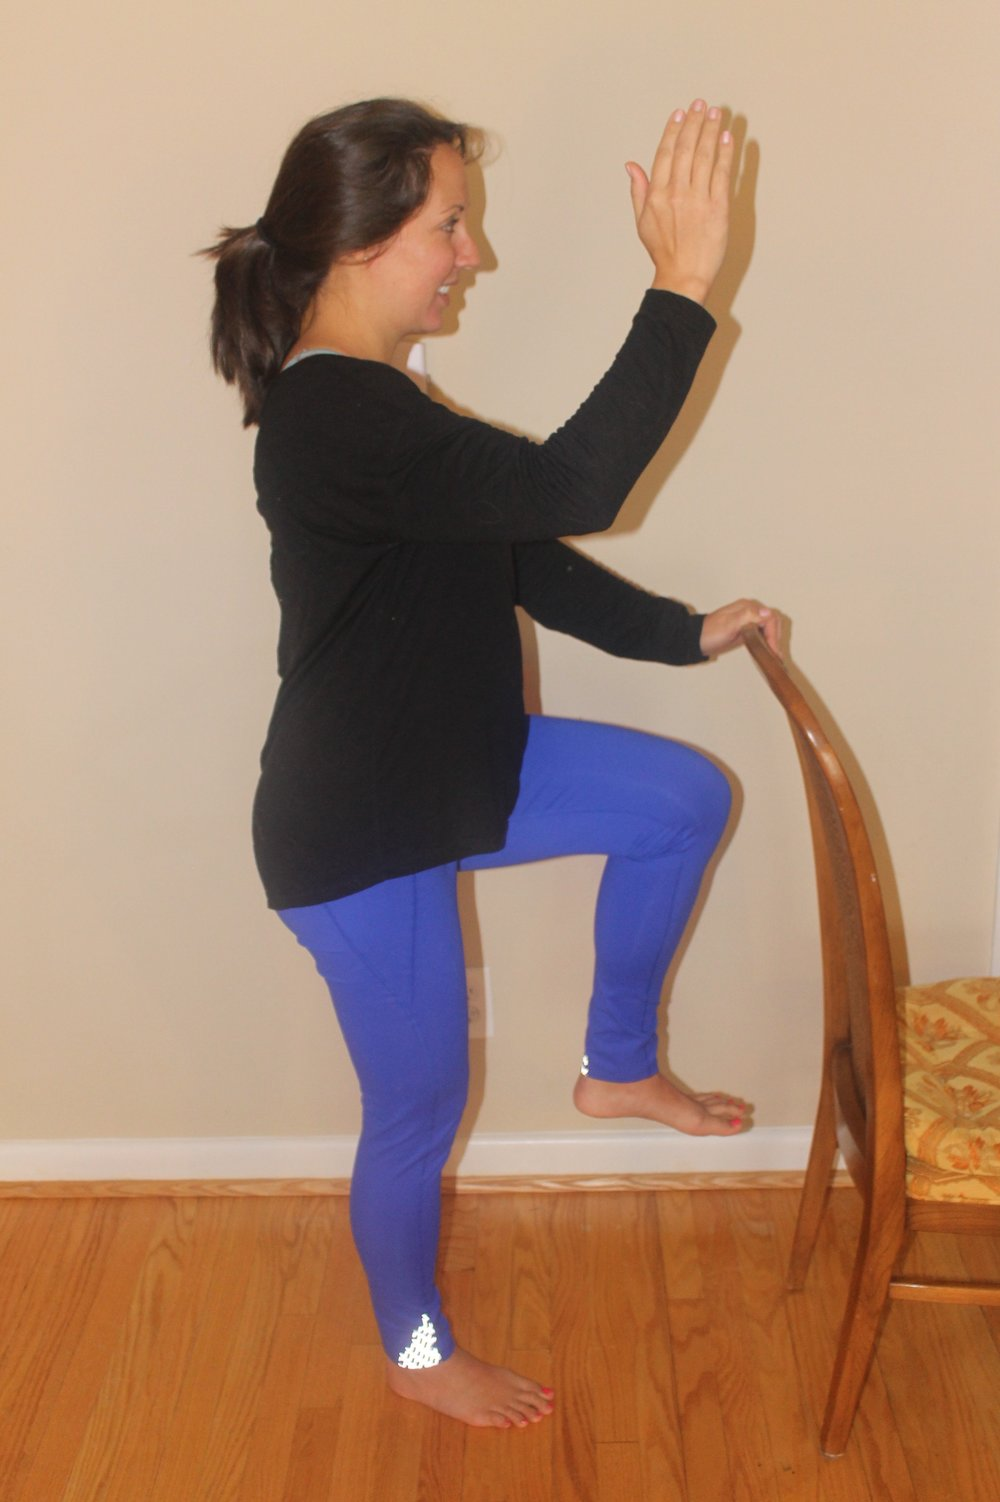 Figure 6: Dr. Heppe performs a single leg stance while holding a chair for support.